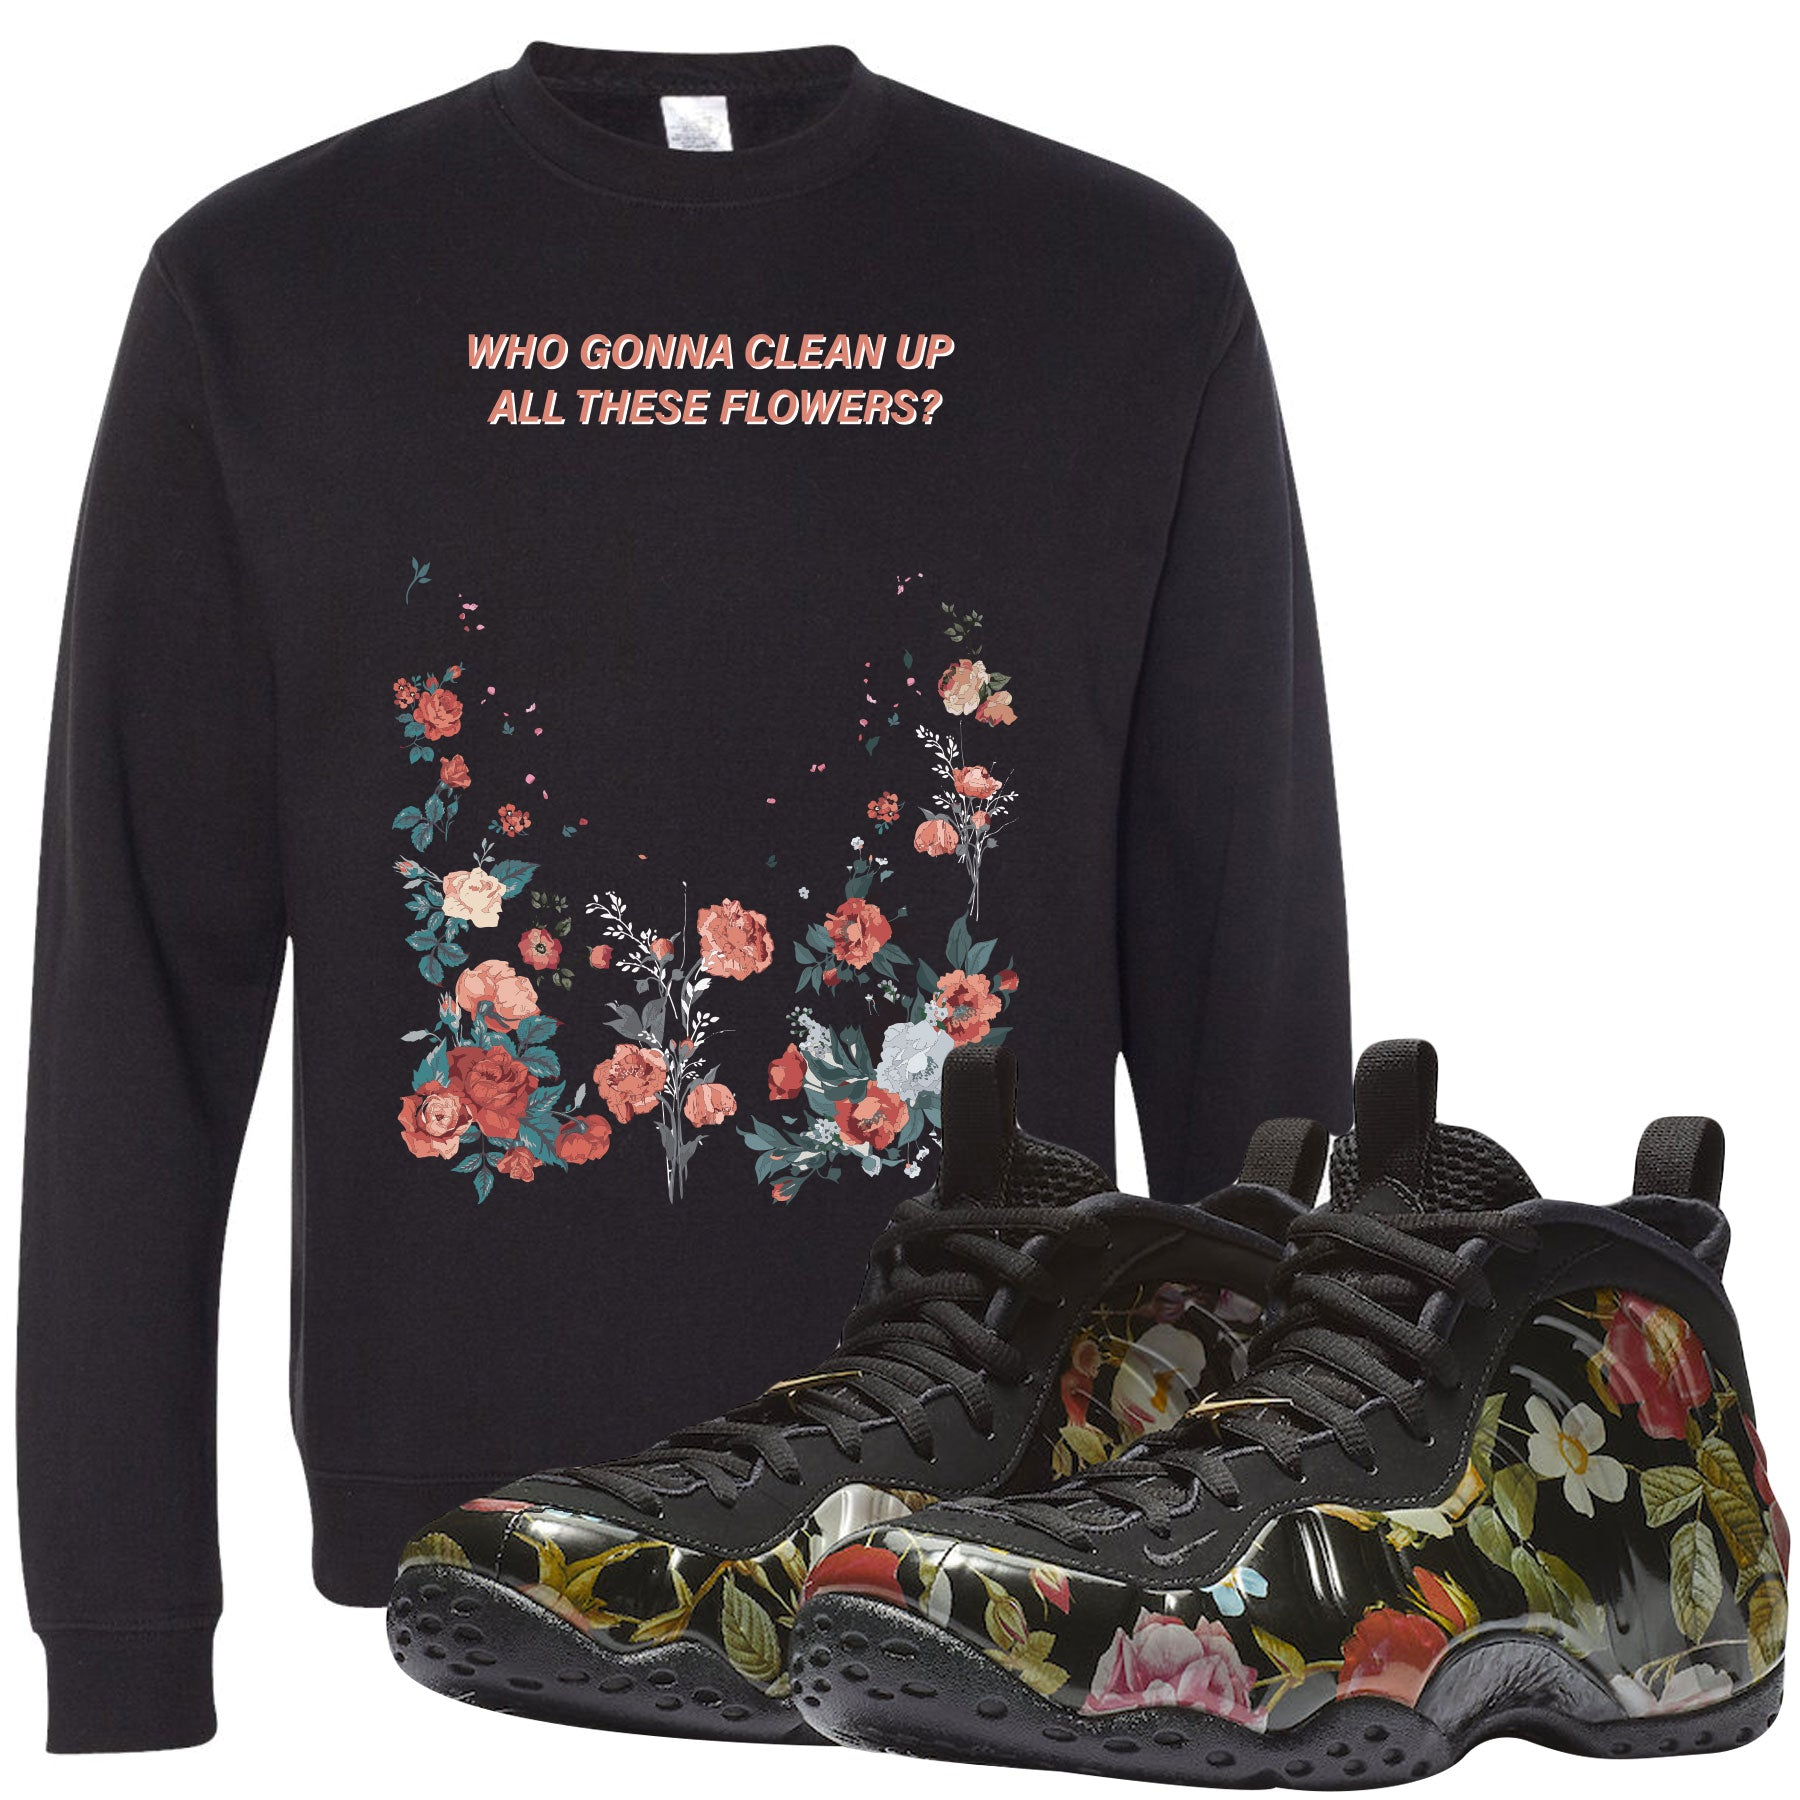 543a077ef3ec9 Wear this sneaker matching crewneck to match your Air Foamposite One Floral  sneakers. Match your